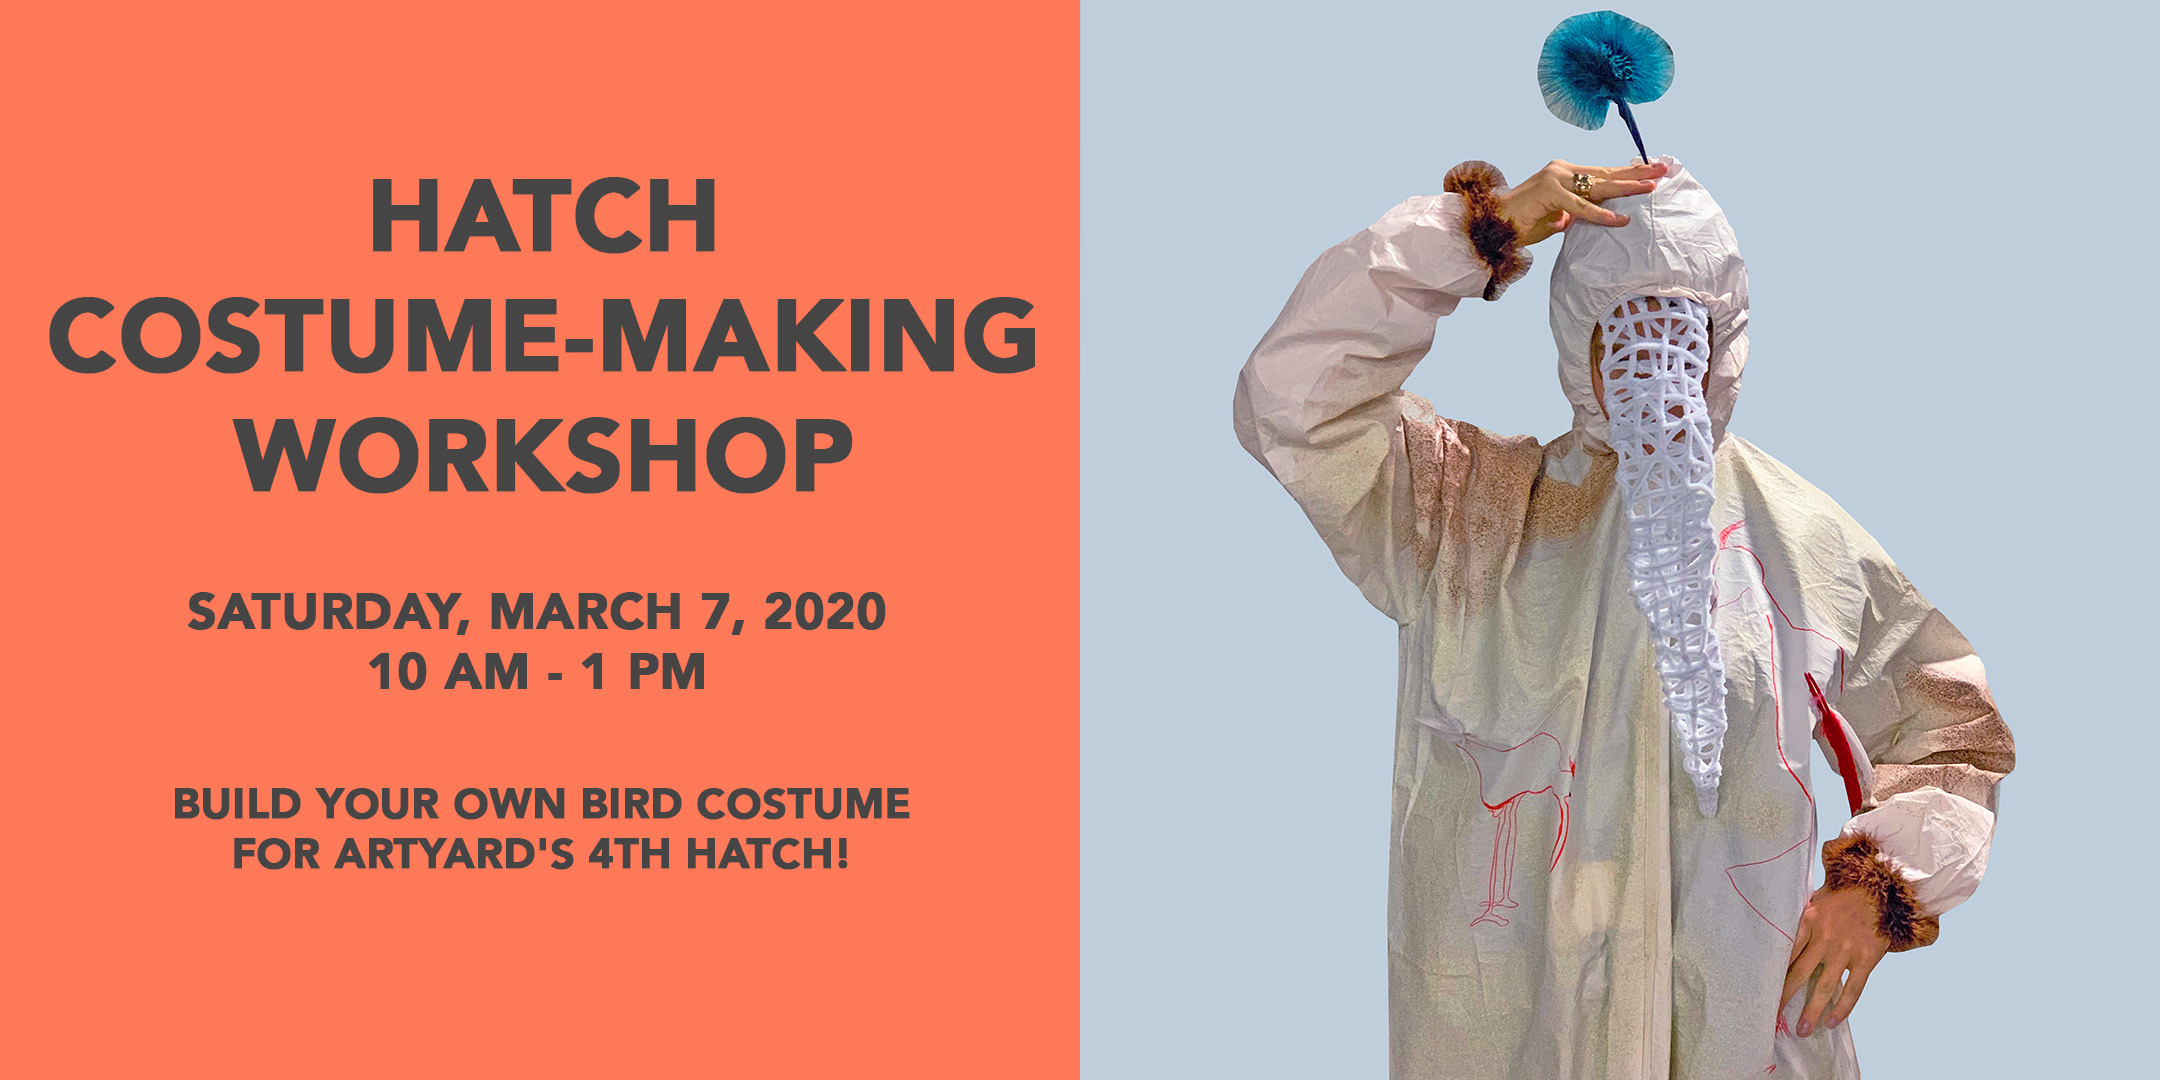 Hatch Costume-Making Workshop @ ArtYard | Frenchtown | New Jersey | United States